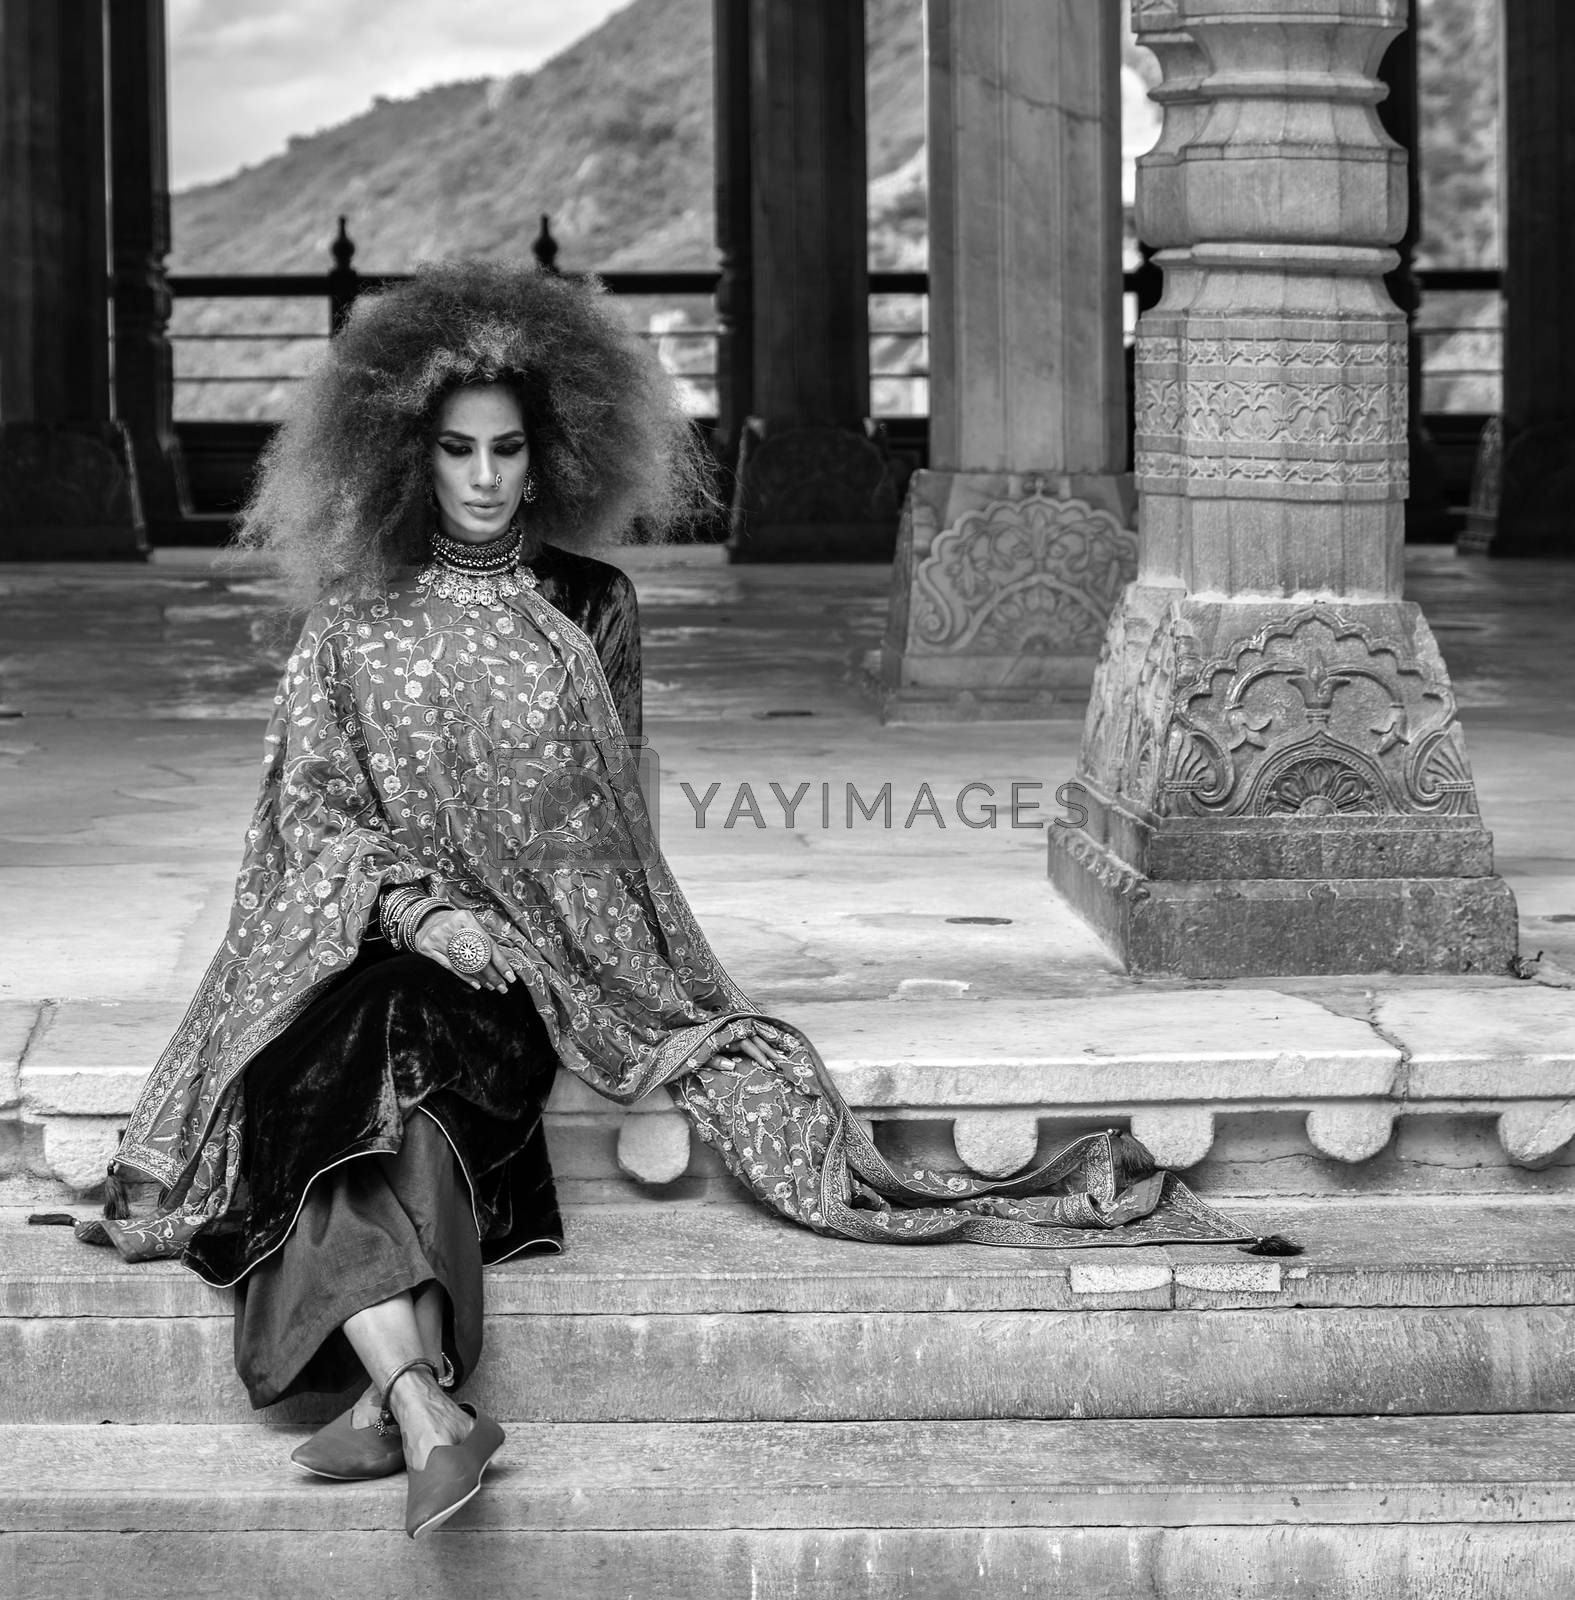 Jaipur, Rajasthan / India - September 28, 2019: Beautiful girl in traditional Indian clothing at the royal palace in the Amer Fort in Jaipur, India